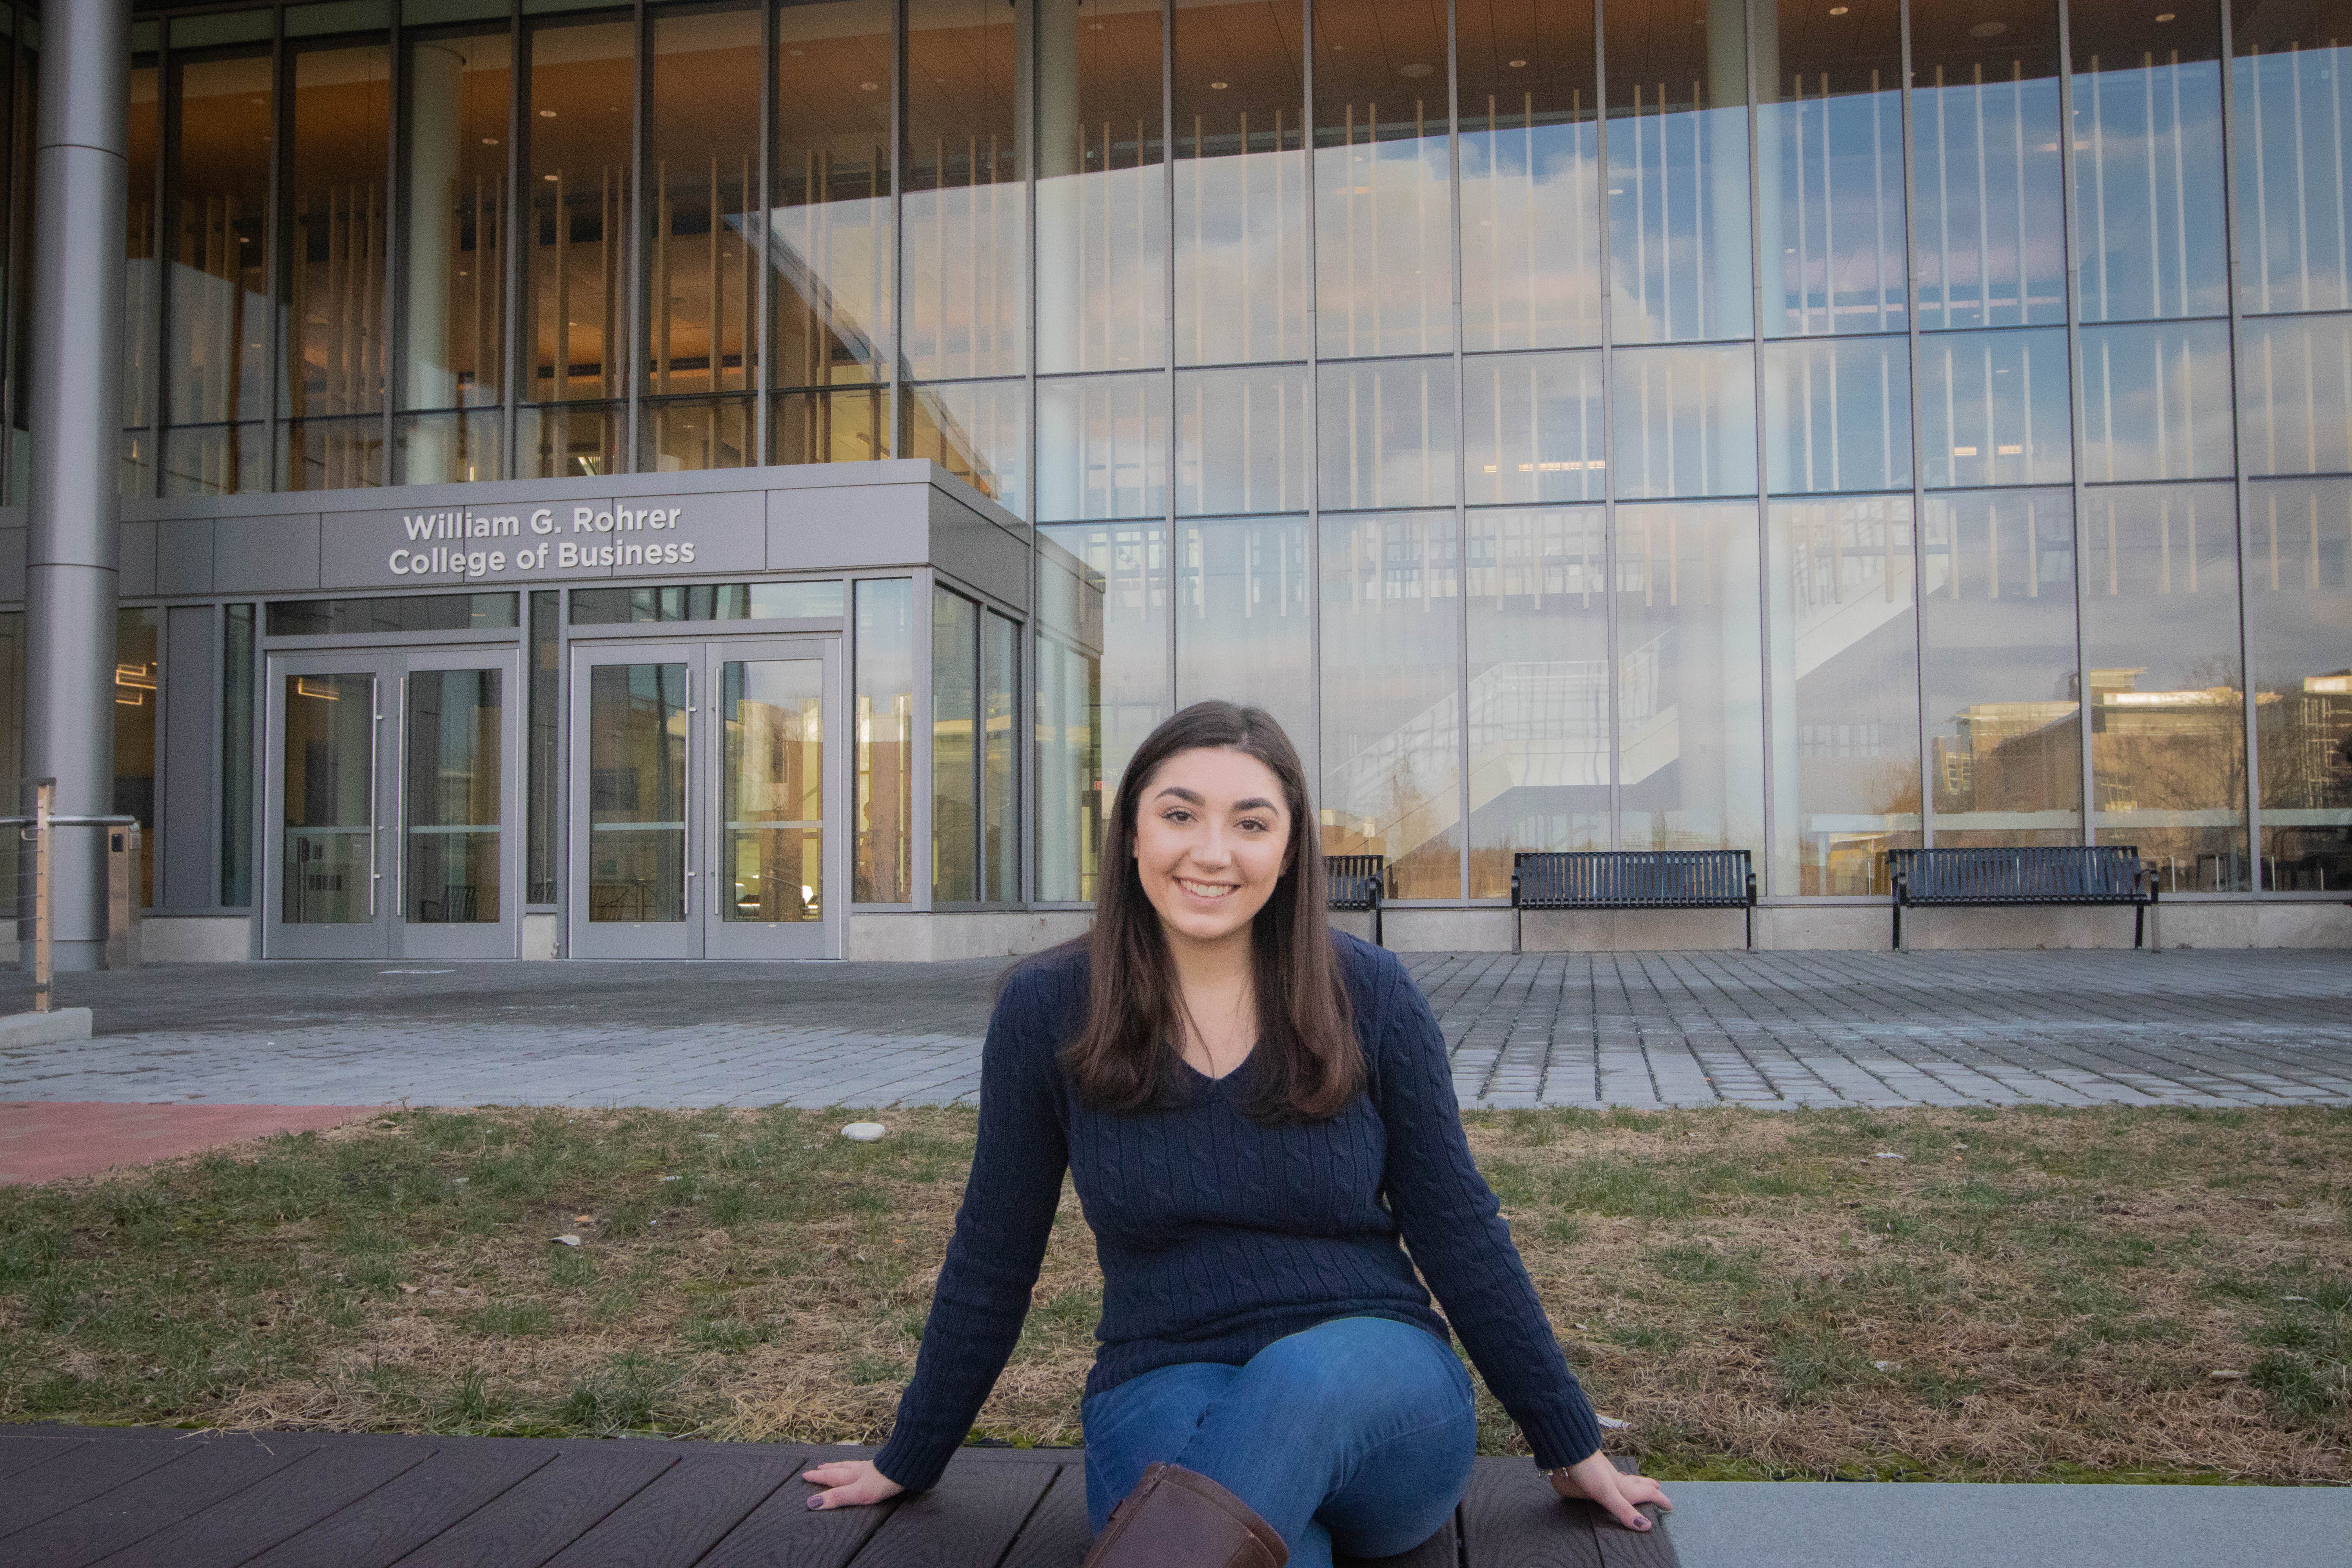 Sophia sitting on the steps of Rowan's Rohrer College of Business building.